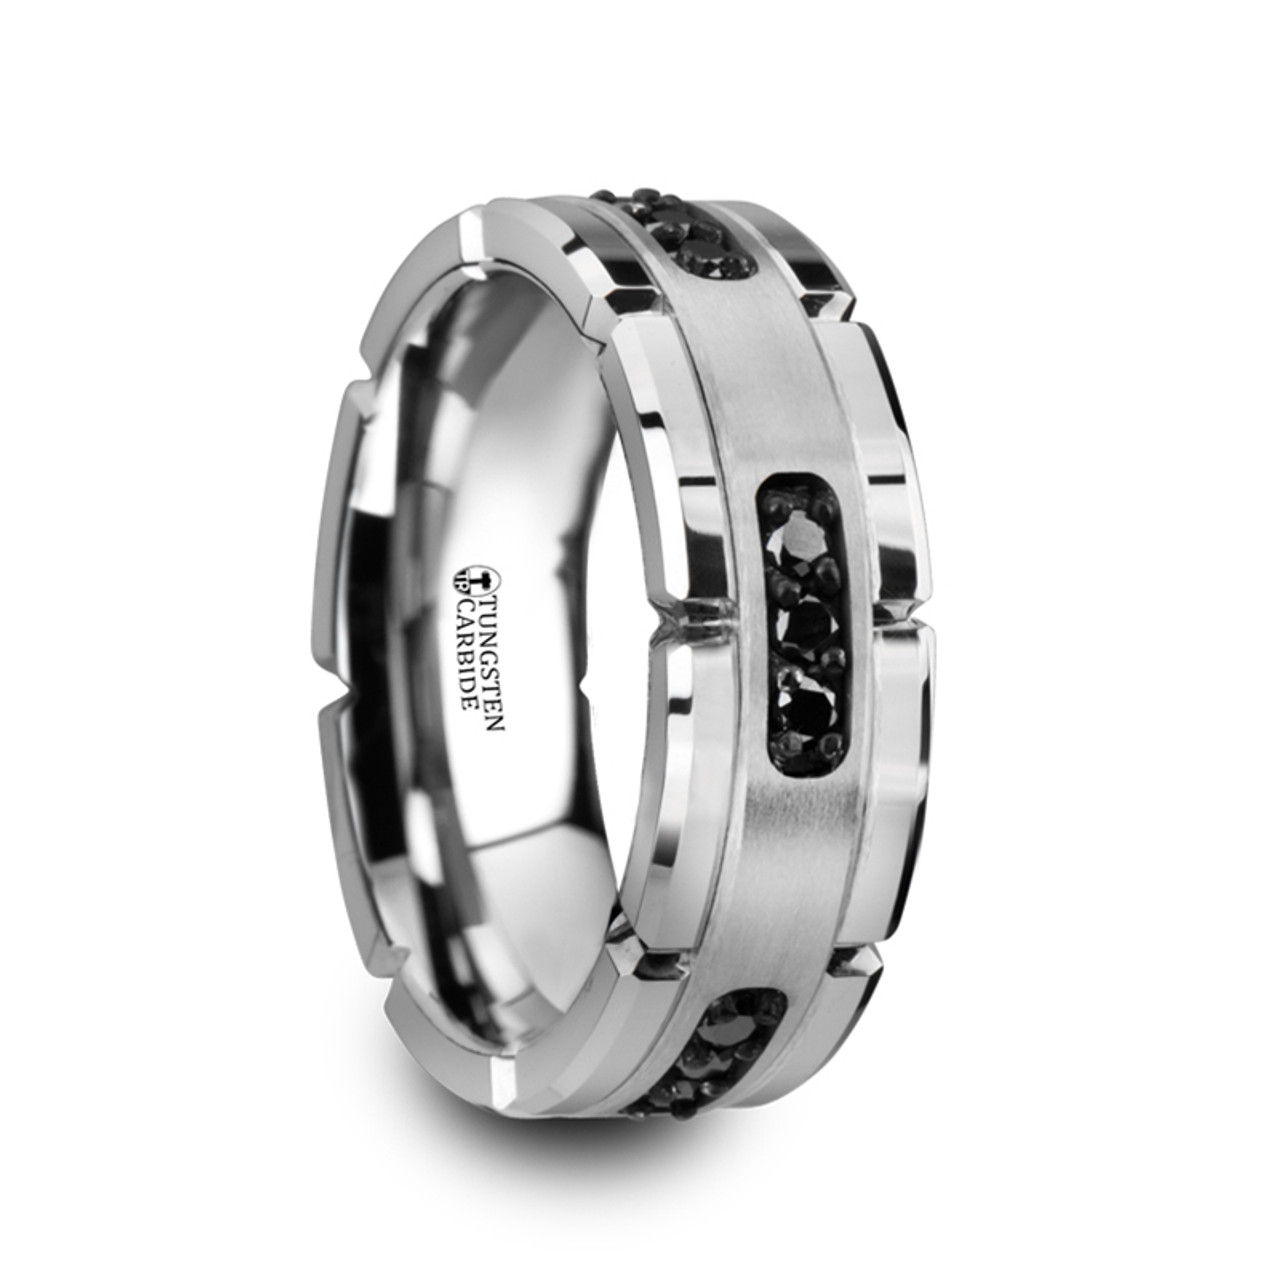 Mens Wedding Bands With Diamonds.27 Cwt Mens Wedding Bands With Diamonds V469tr